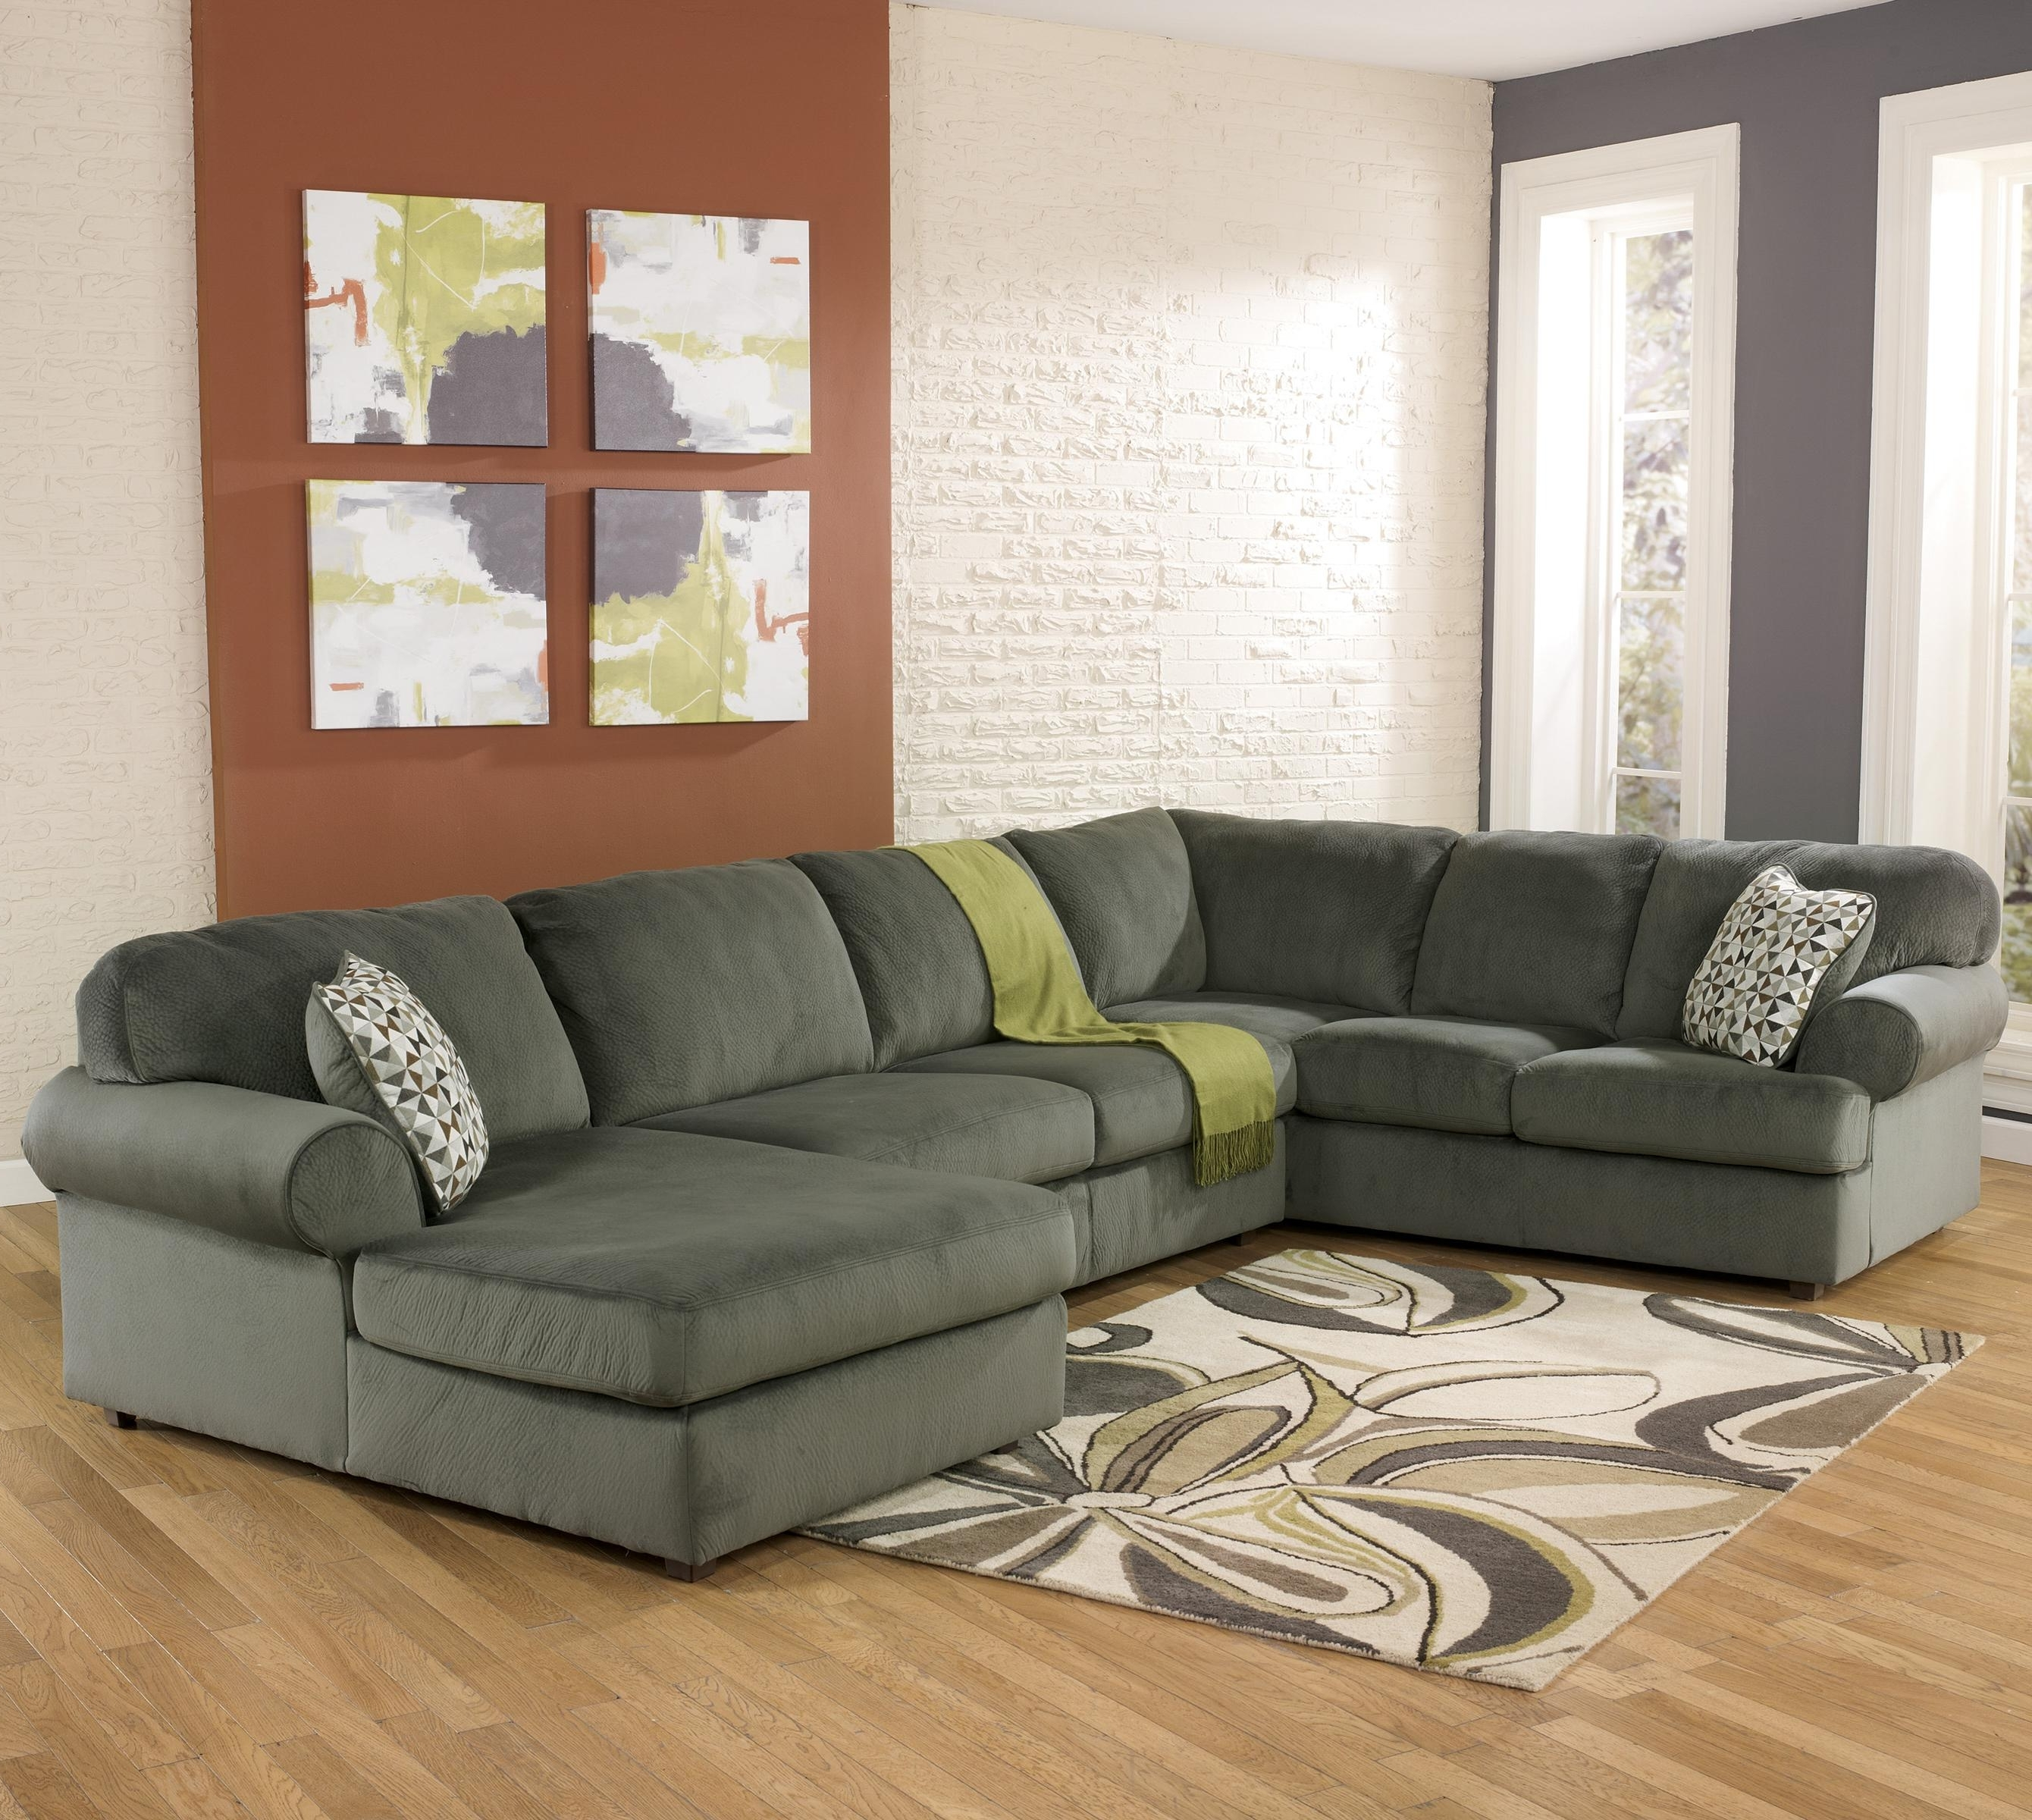 Casual Sectional Sofa With Right Chaisesignature Design Pertaining To Most Recent Lancaster Pa Sectional Sofas (View 4 of 15)